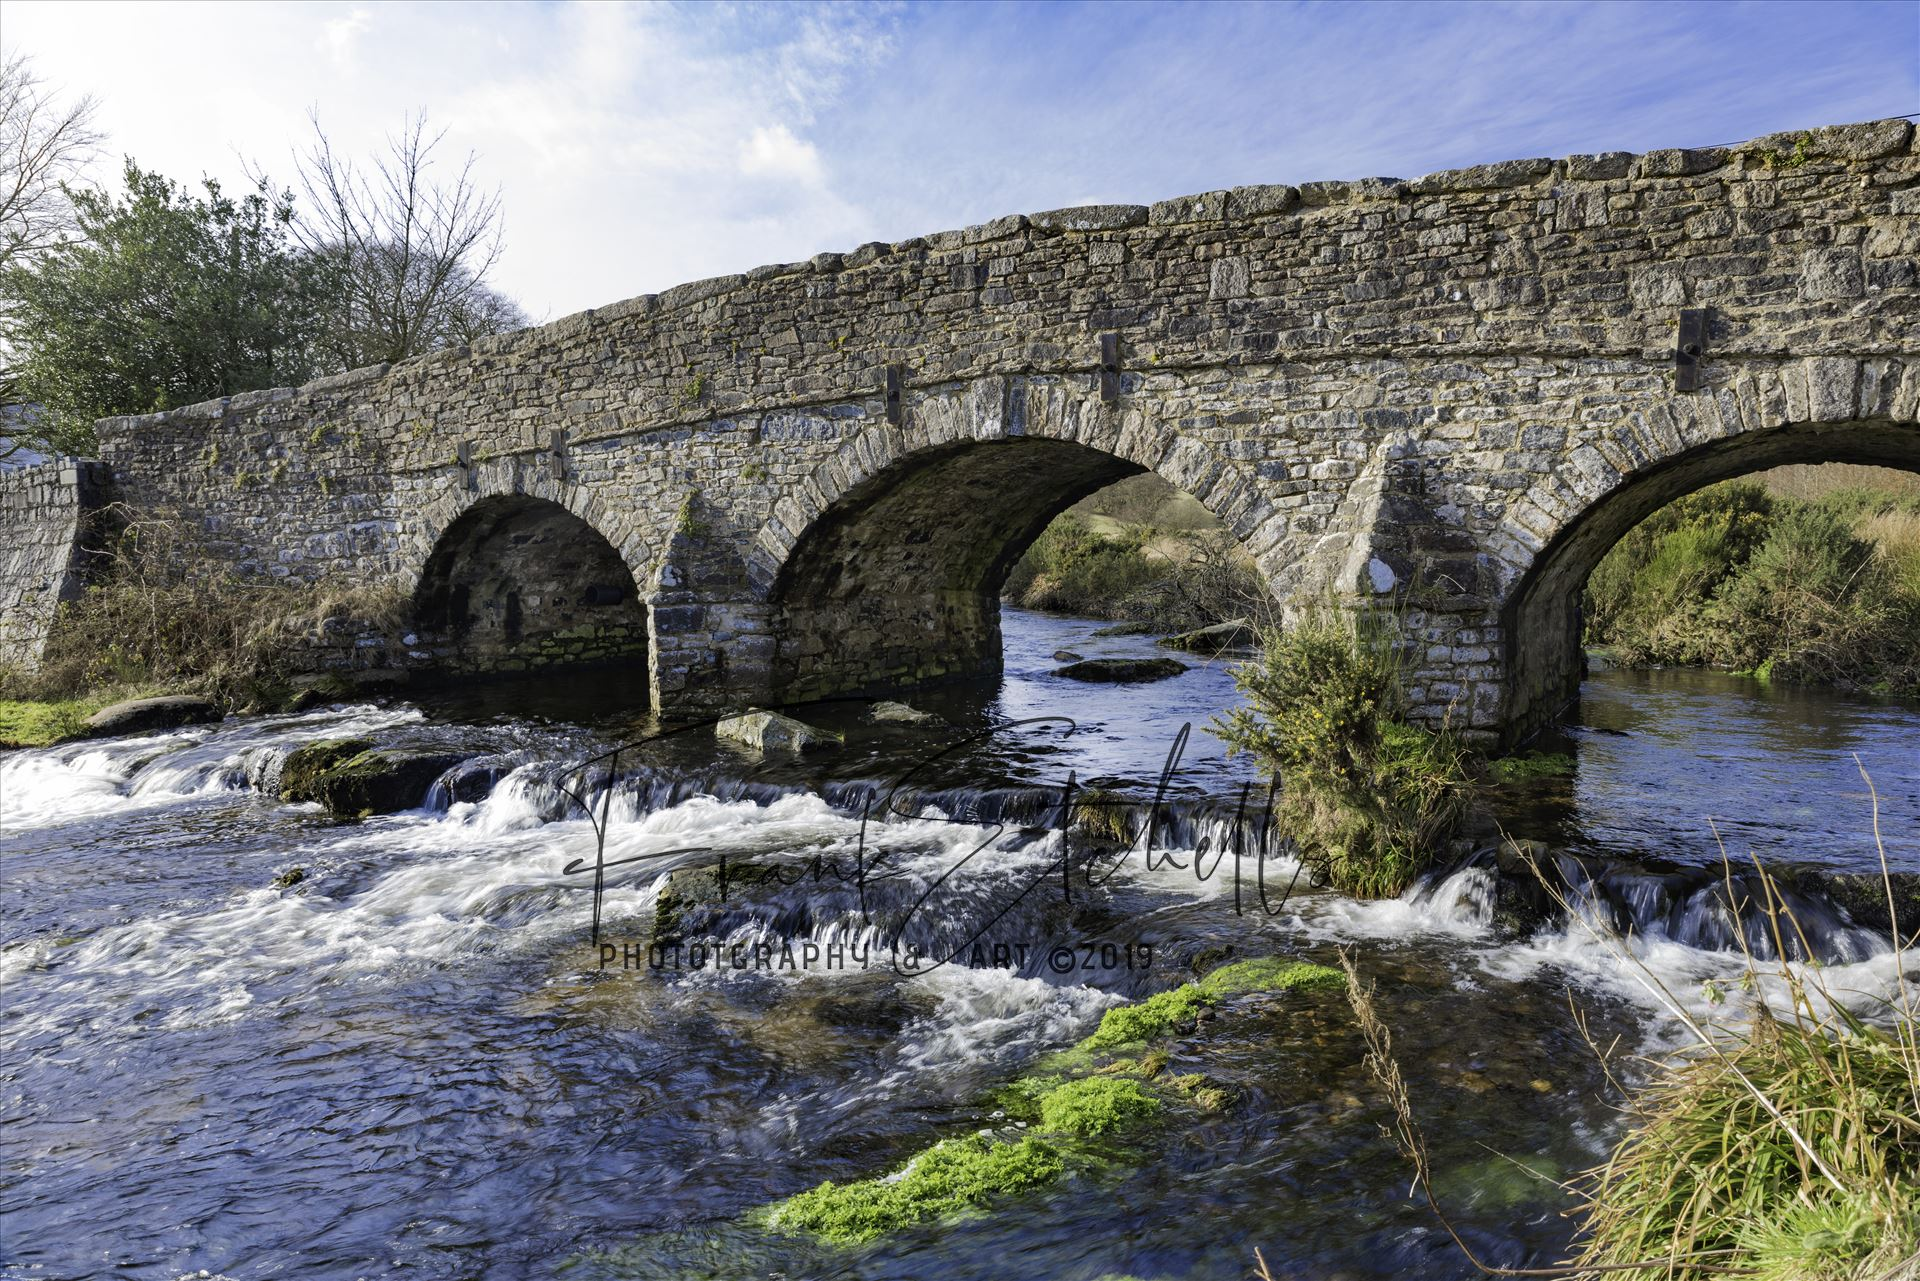 East Dart River Bridge 4 - A view of the bridge over the East Dart River at Postbridge, Dartmoor National Park from the side of the